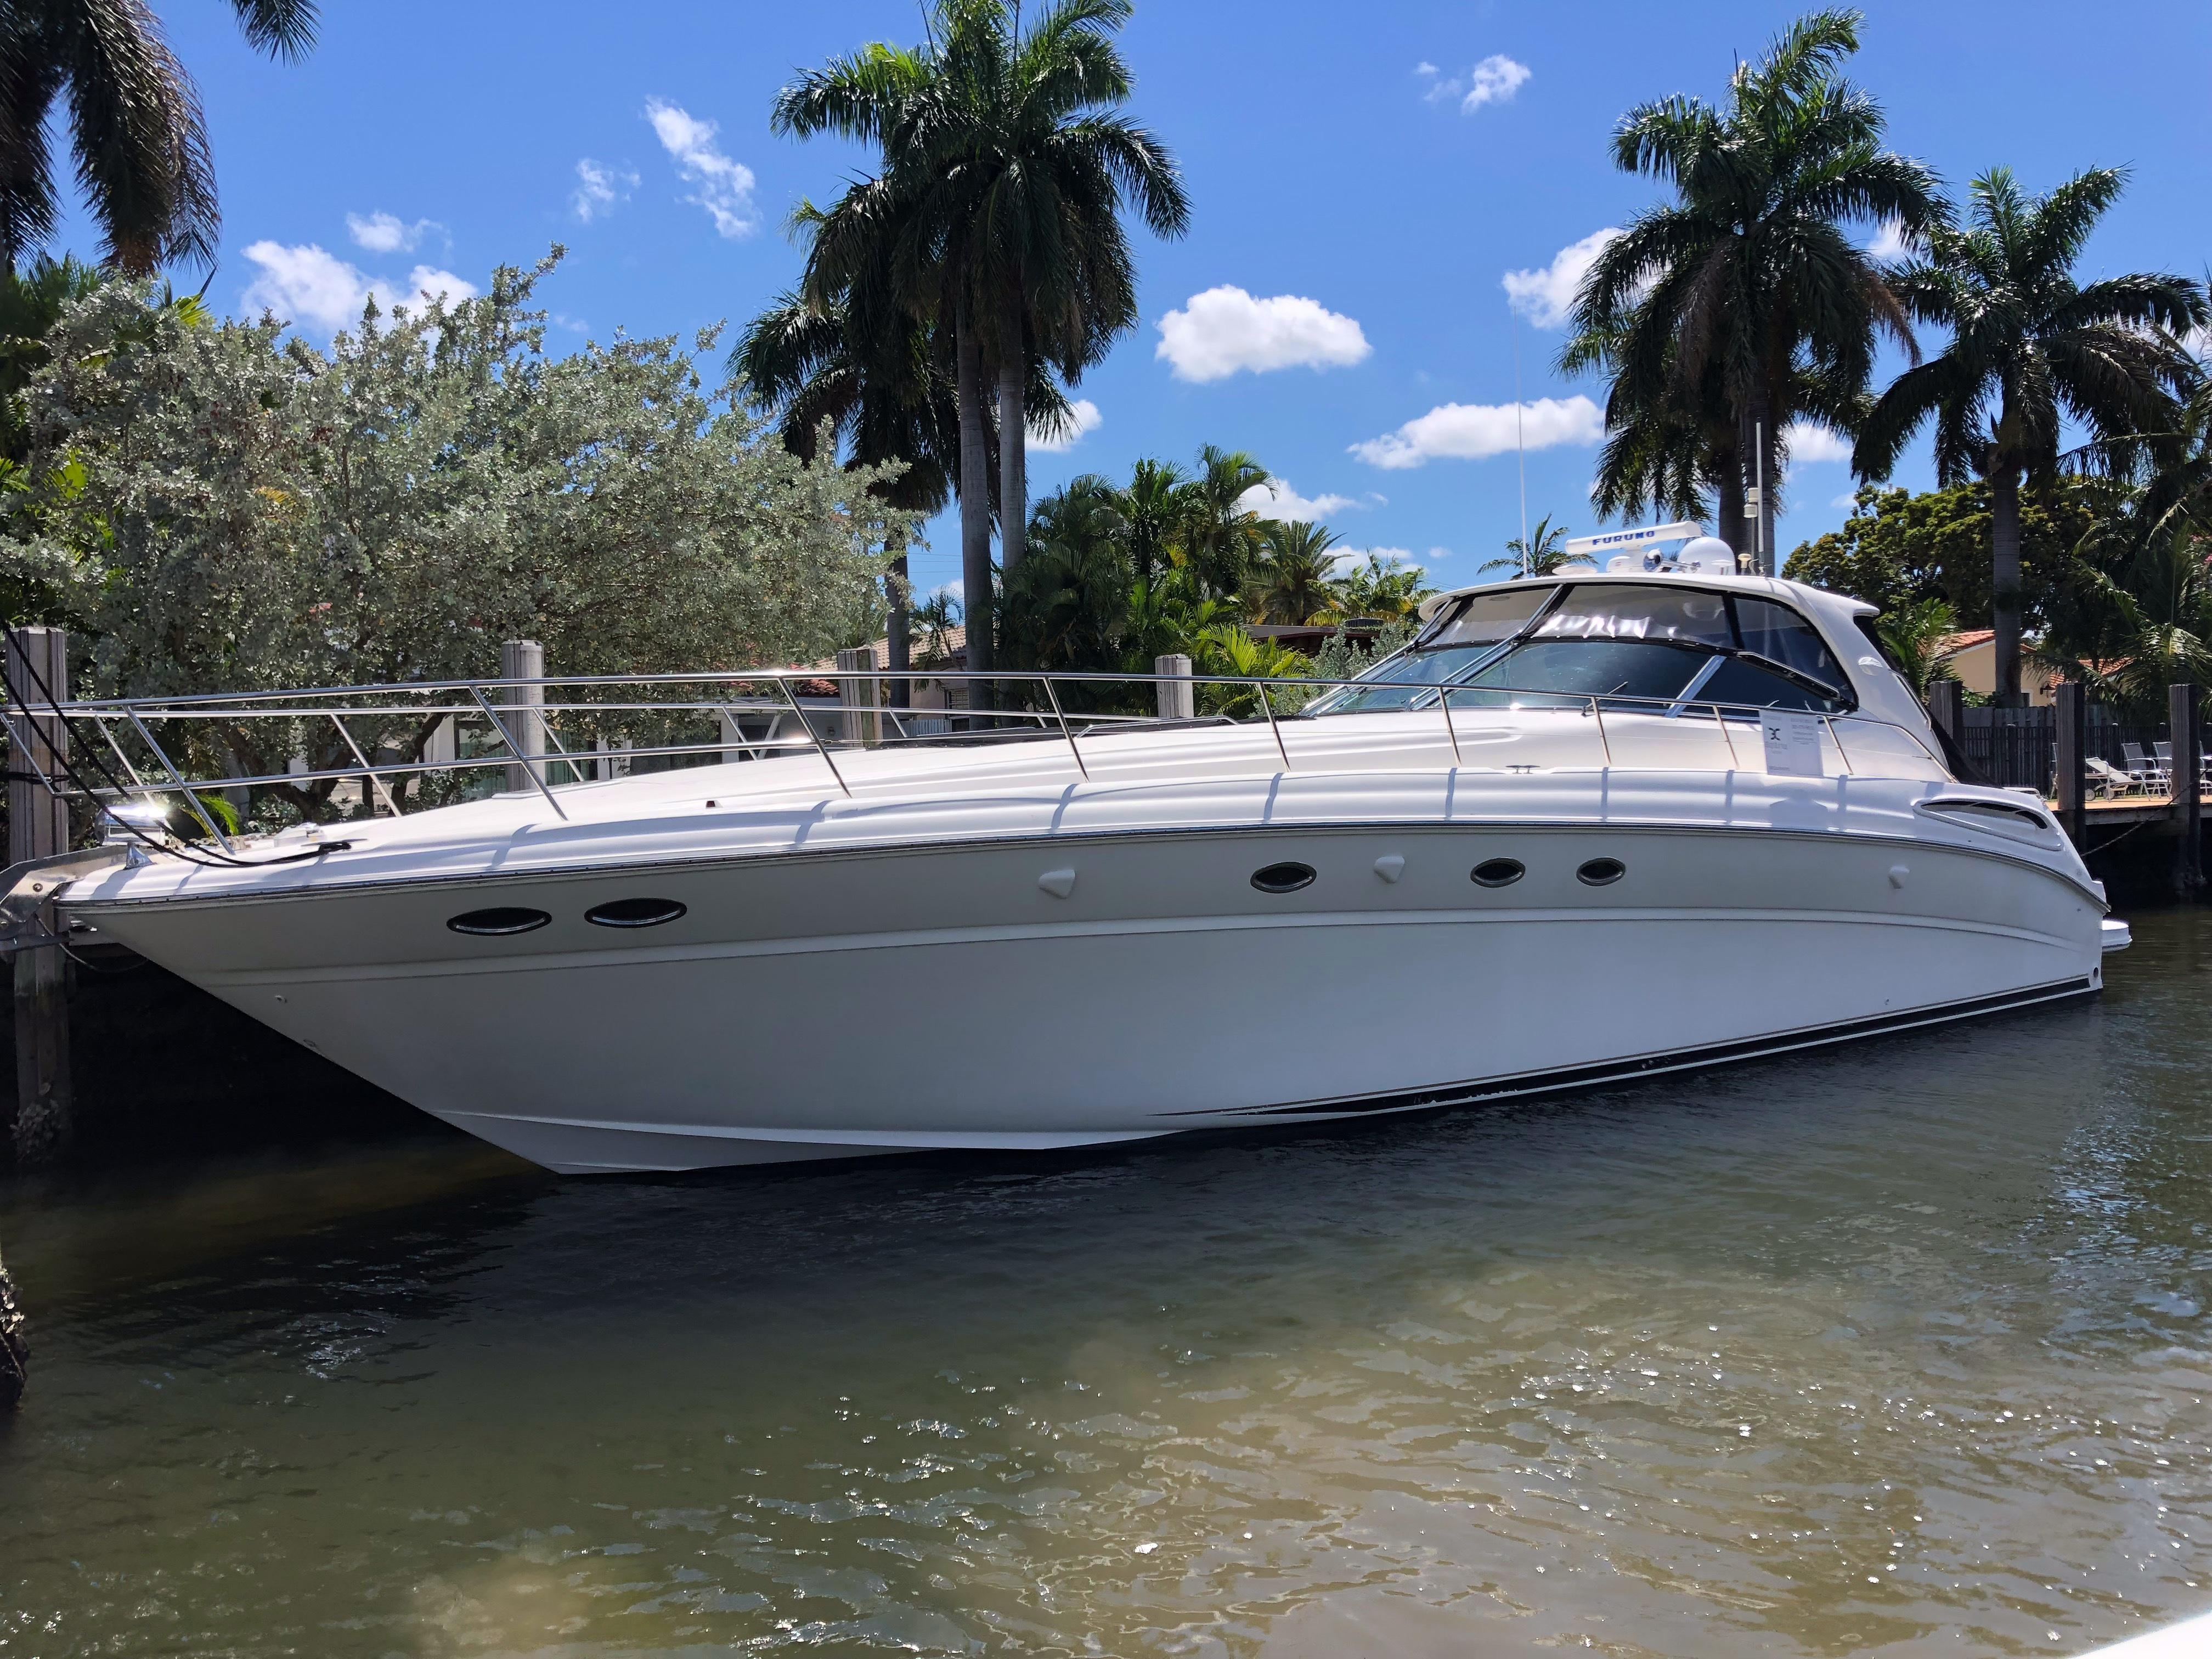 51 Sea Ray A Yacht 2000 Fort Lauderdale Denison Yacht Sales